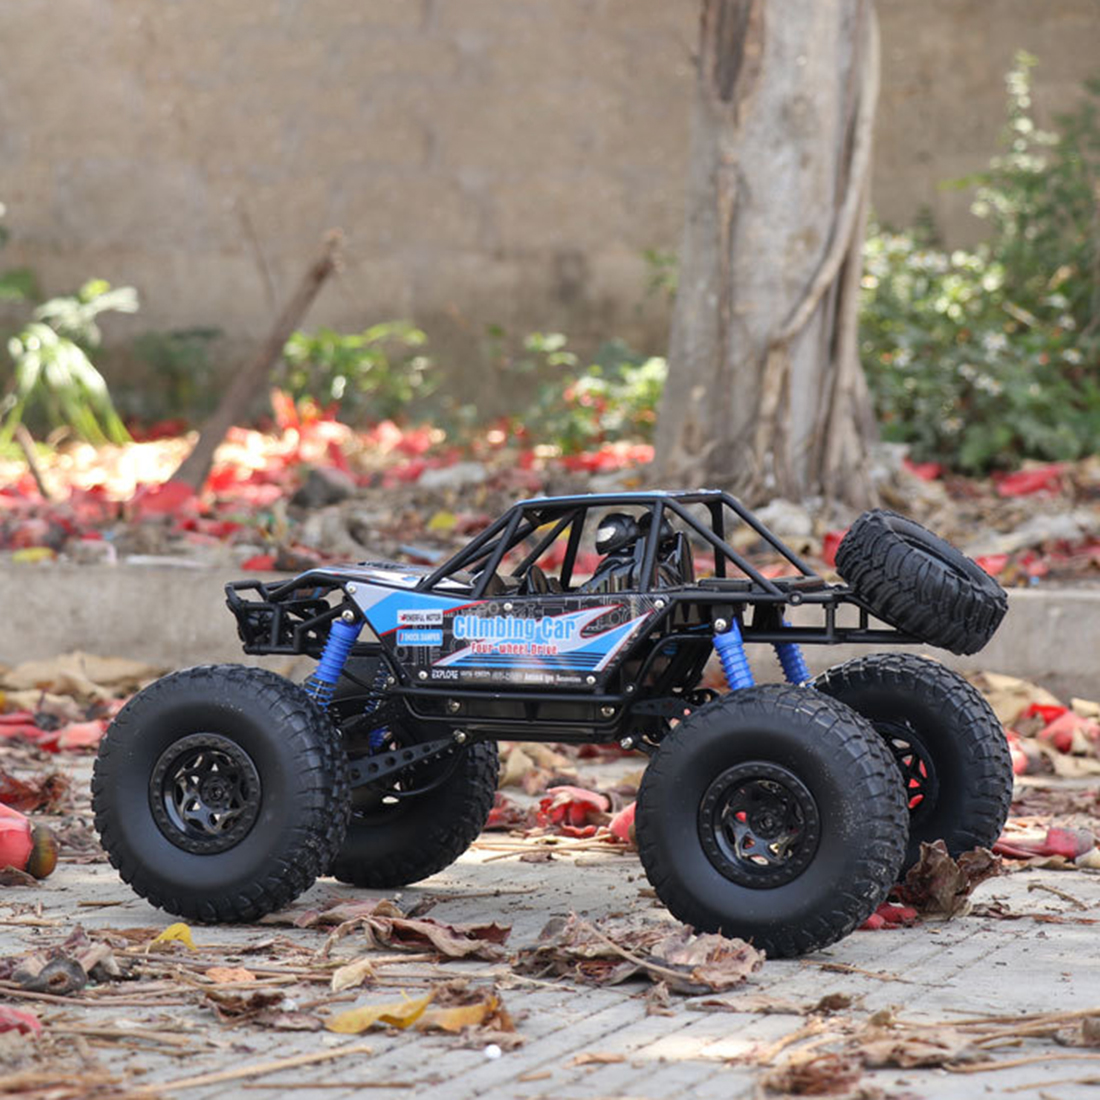 48cm 1:10 4WD 2.4G RC Monster Truck High Speed Racing Car Off Road Vehicle For Child School Play Education Birthday Gift Blue - 5